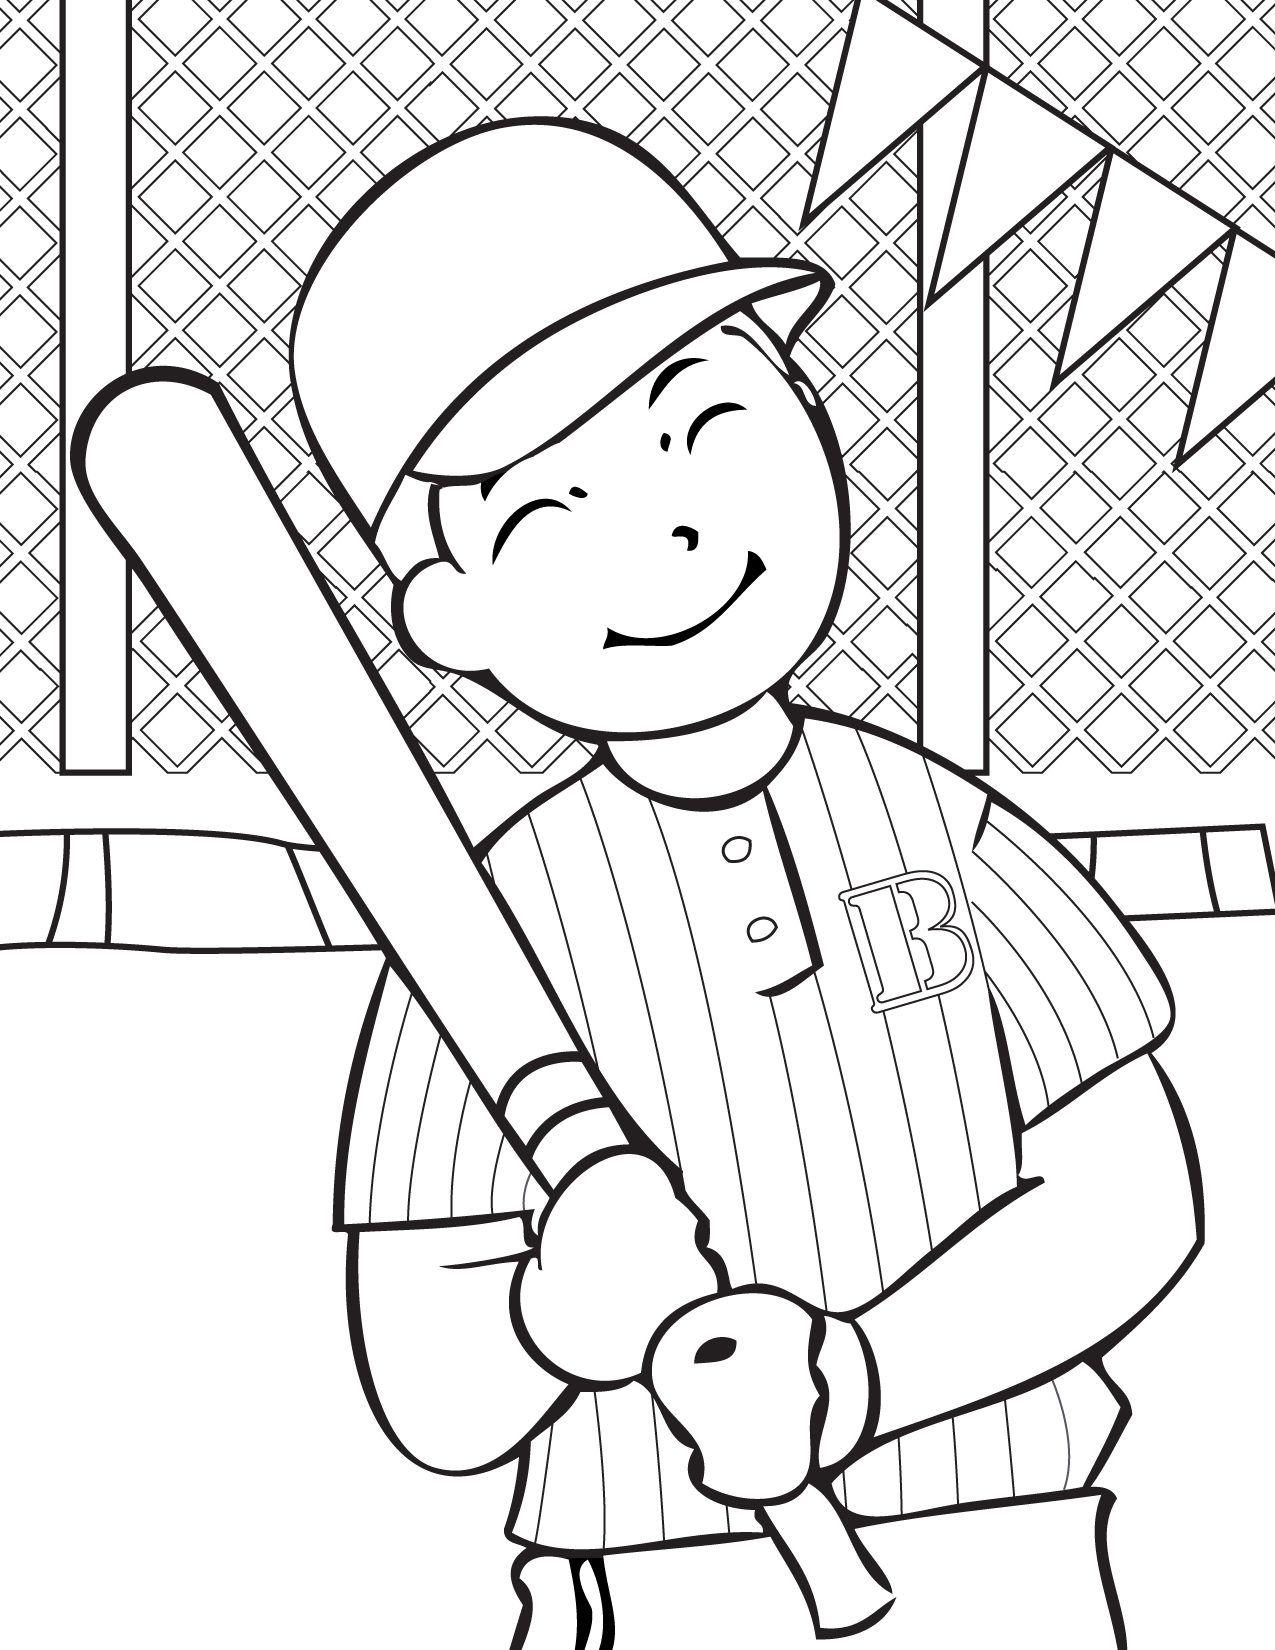 Free Printable Baseball Coloring Pages For Kids